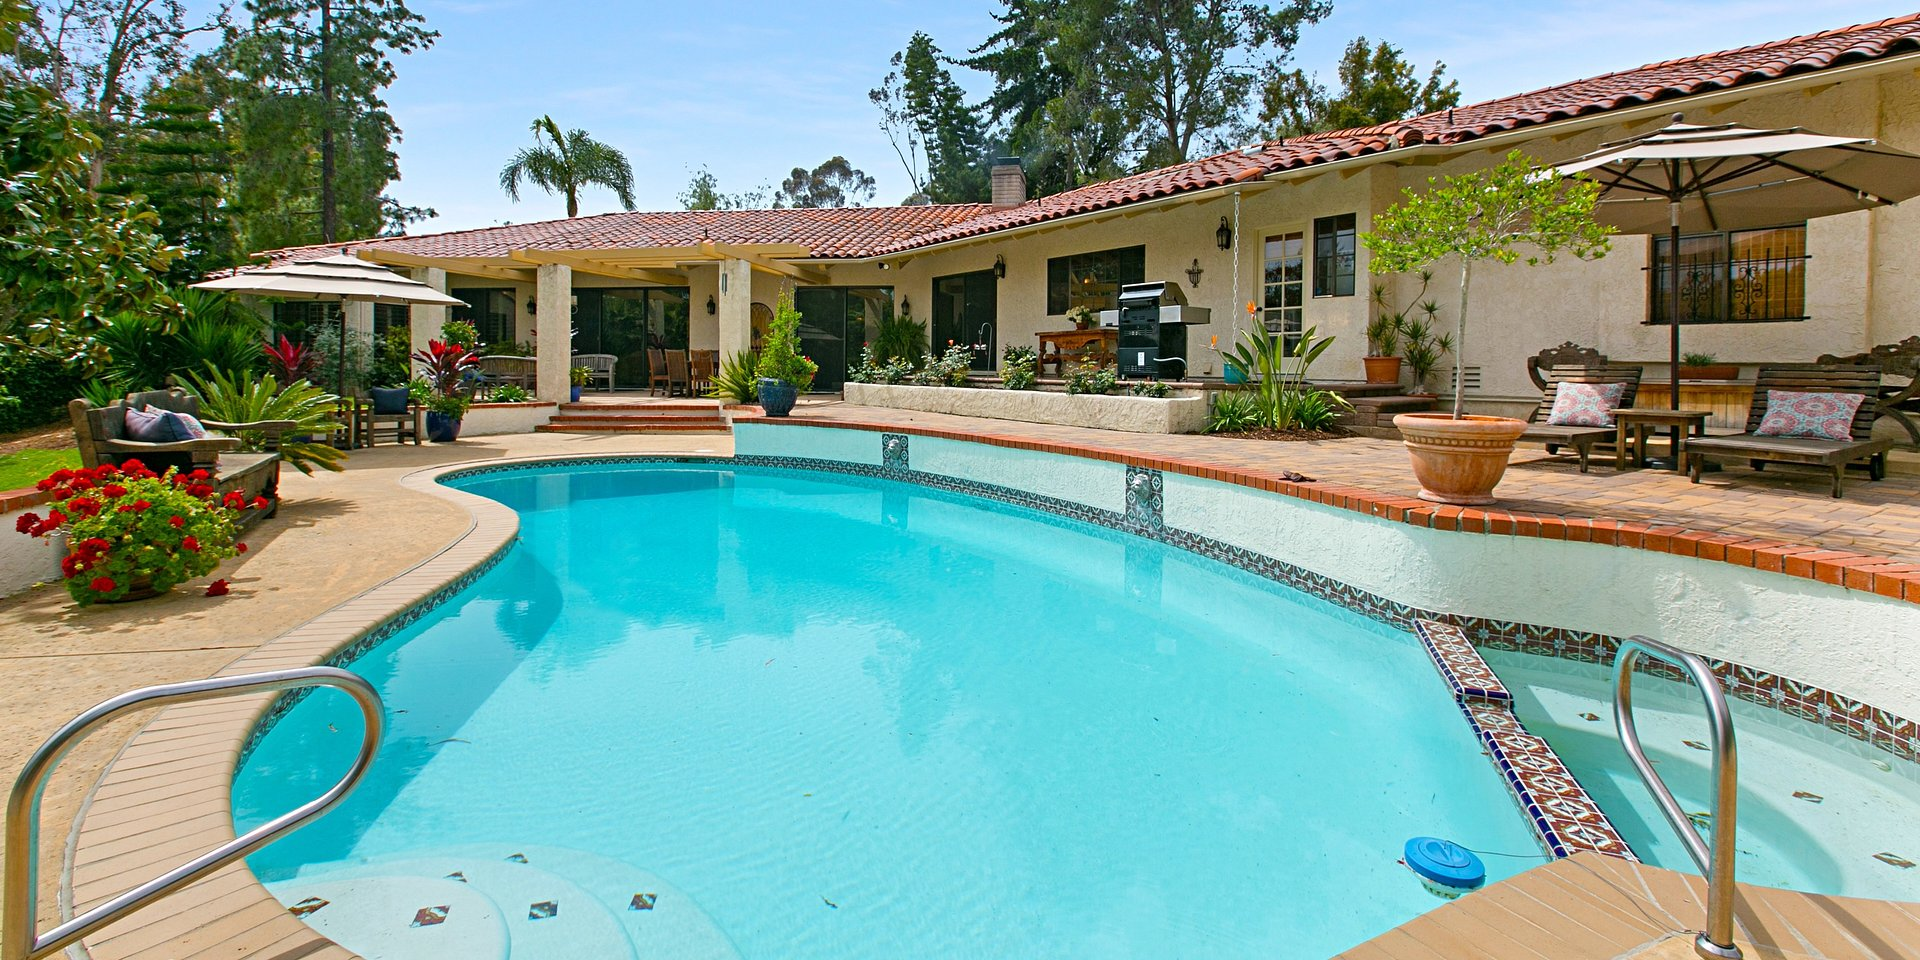 Coldwell Banker Residential Brokerage Lists Rancho Santa Fe Property for $2,345,000